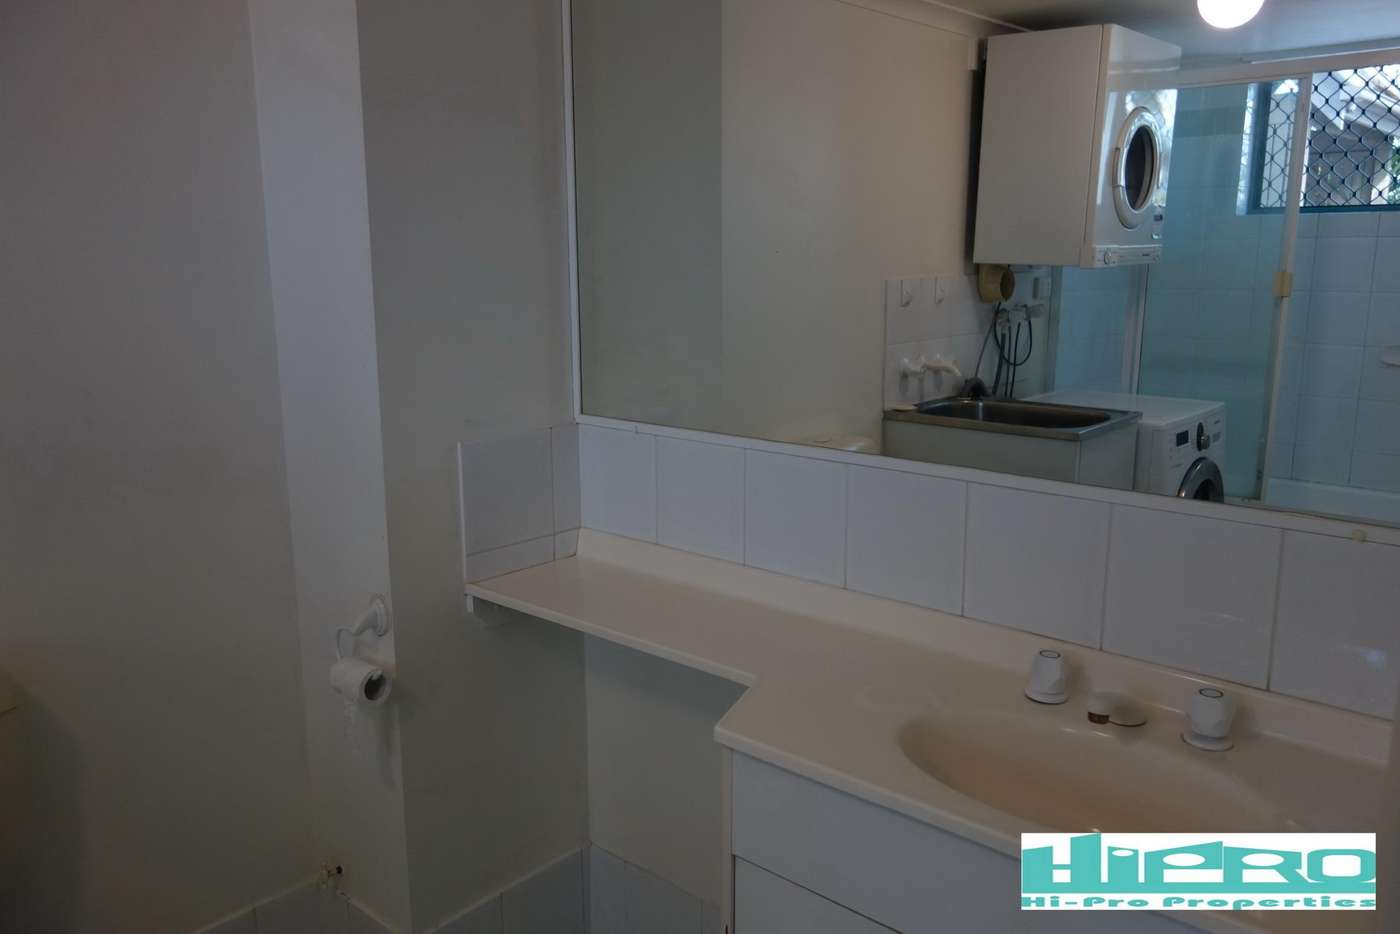 Sixth view of Homely apartment listing, 11/51 Leopard Street, Kangaroo Point QLD 4169